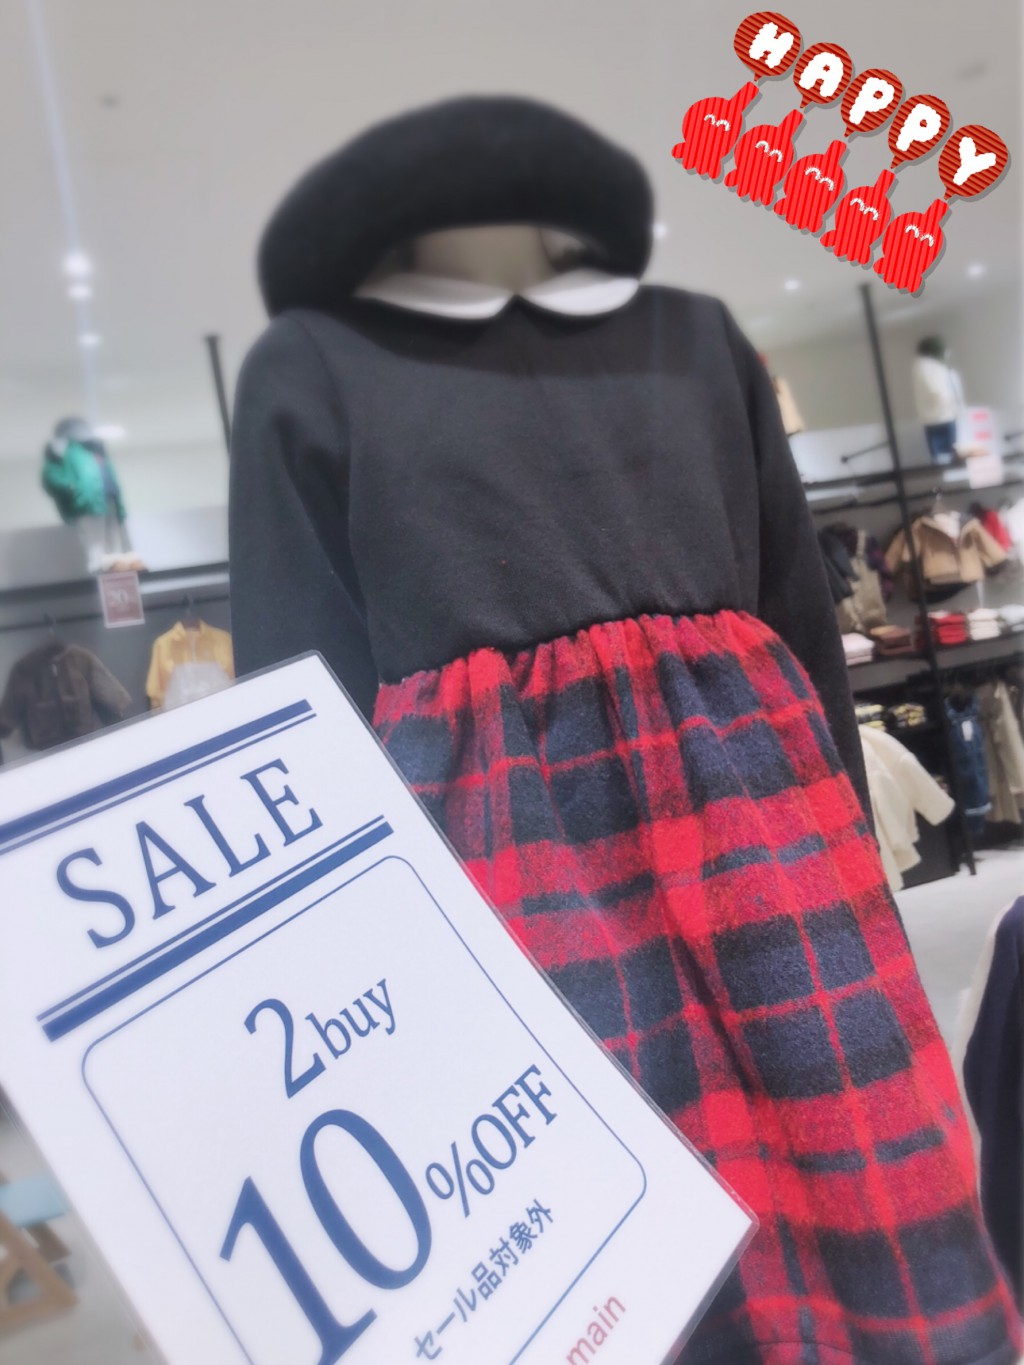 🍏 SPECIAL SALE 🍎